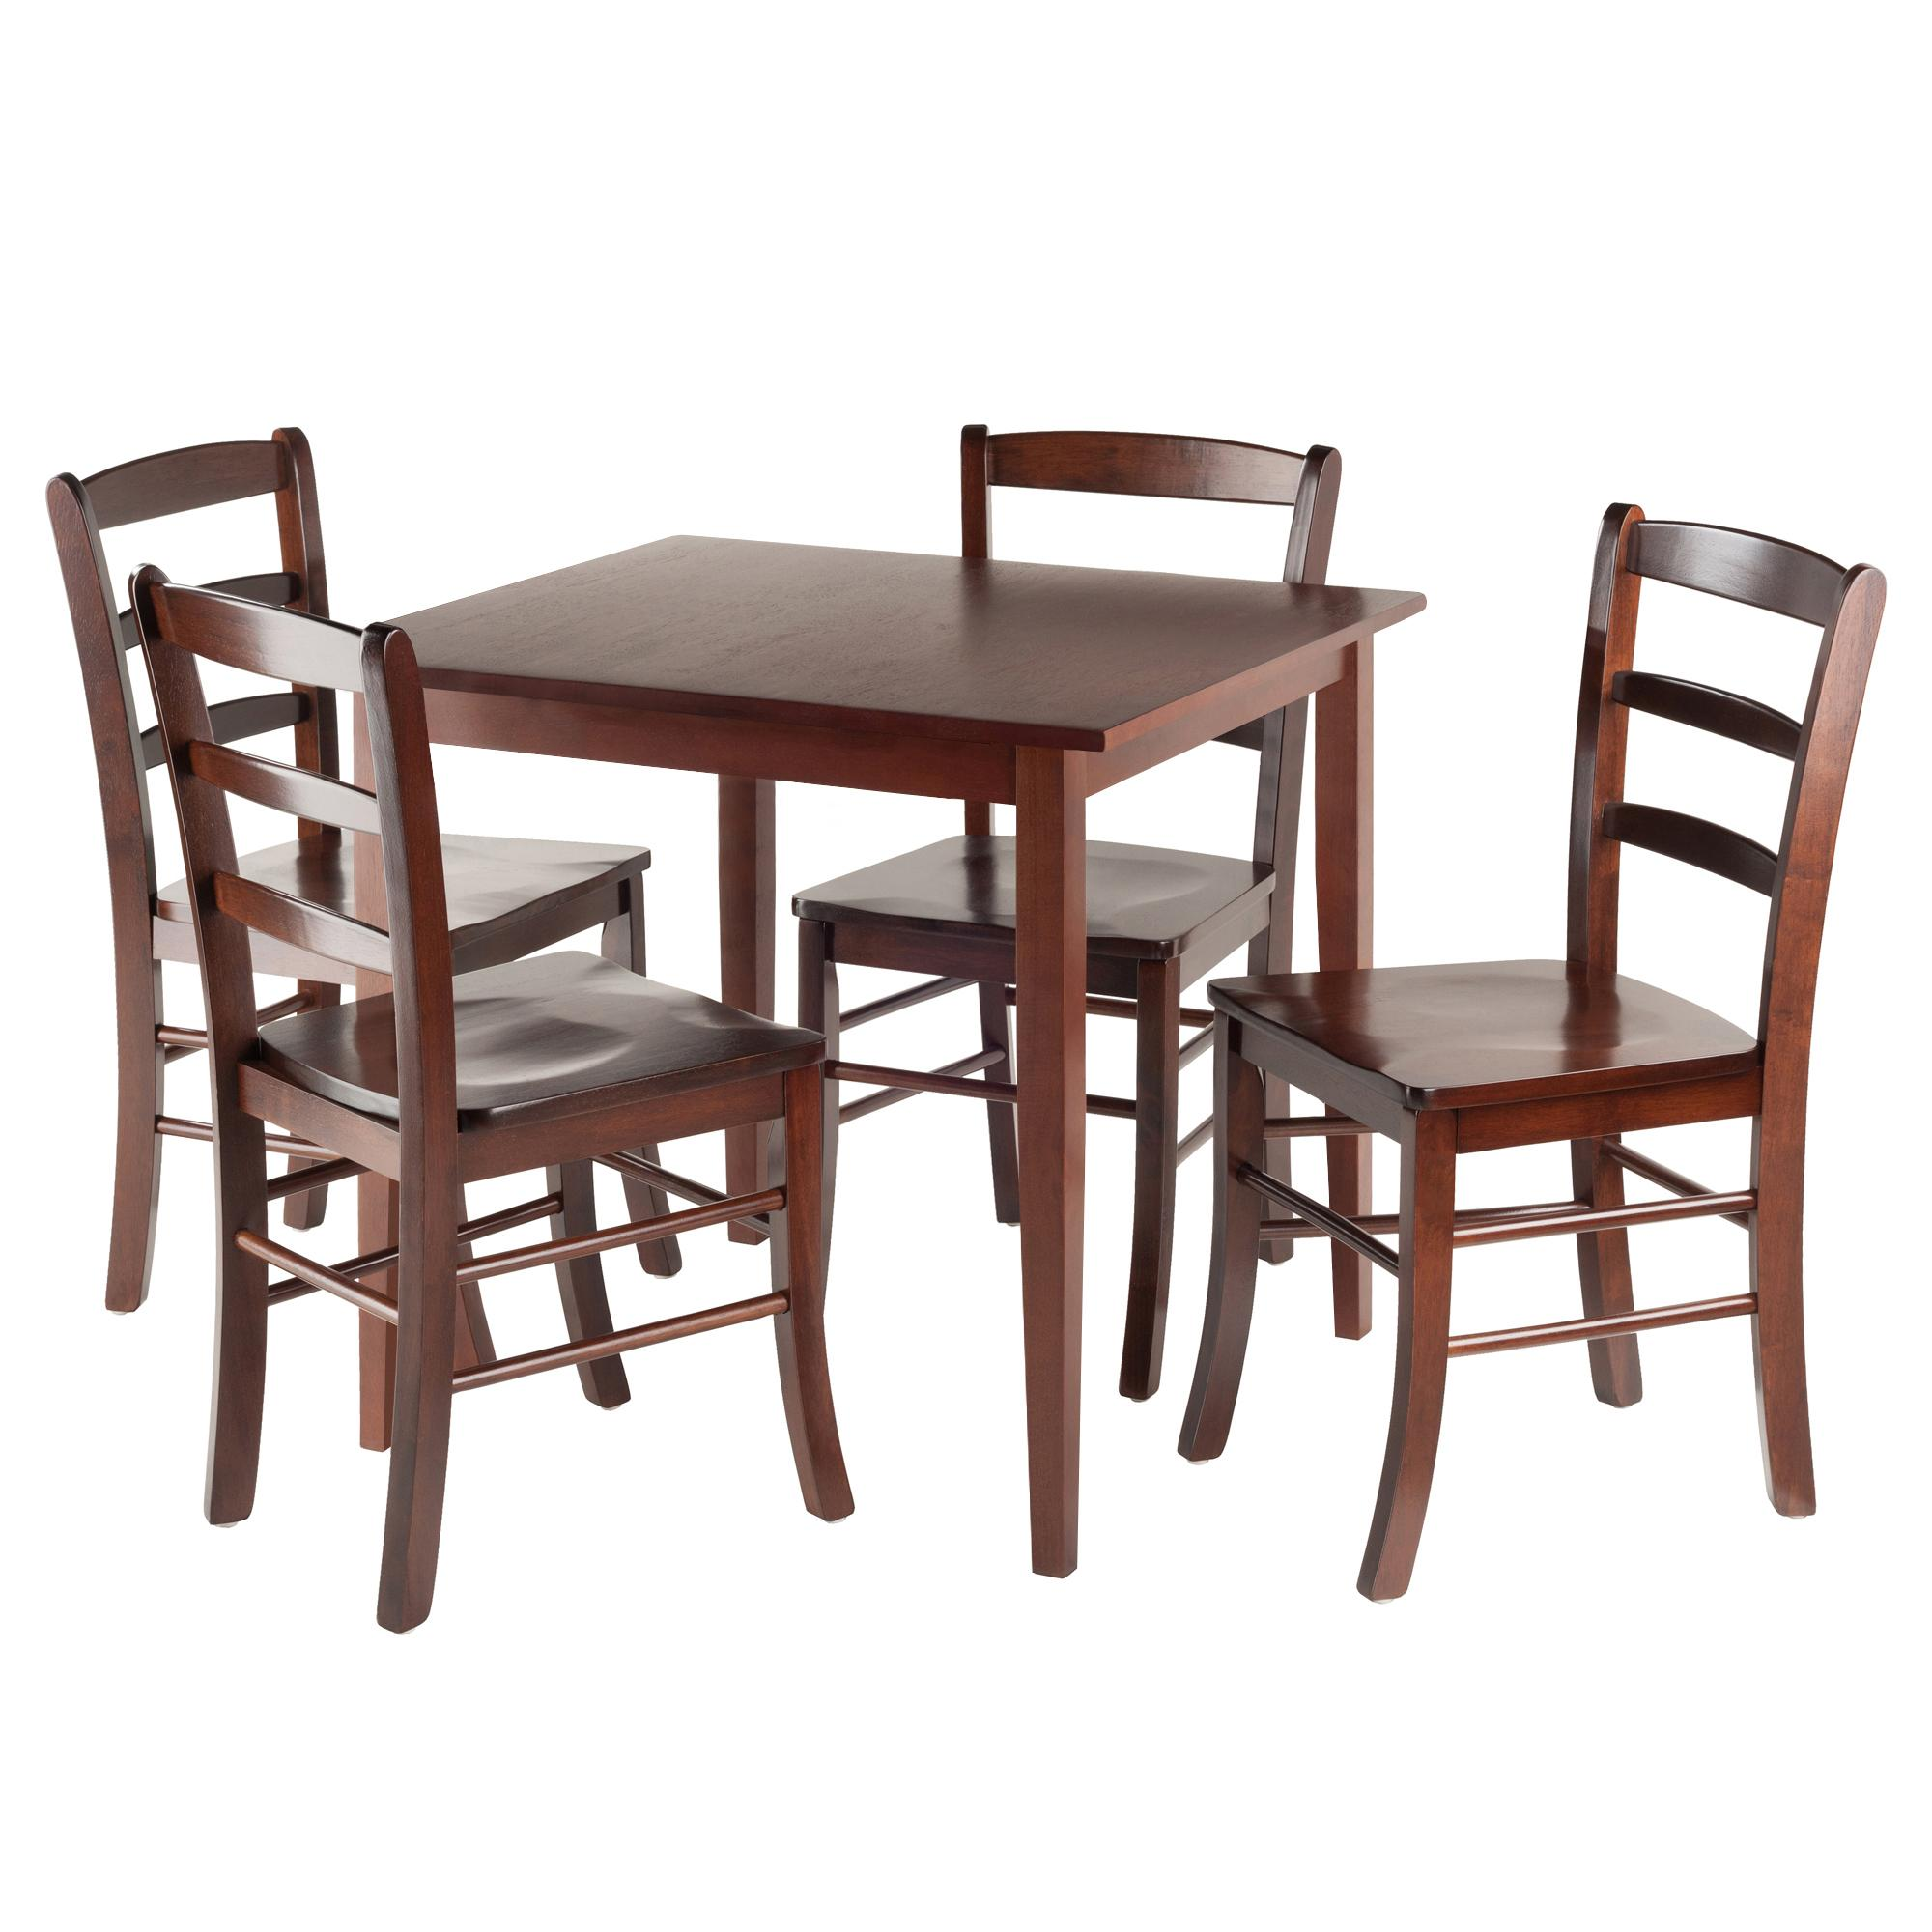 Amazon.com - Winsome Groveland Square Dining Table with 4 chairs, 5 ...